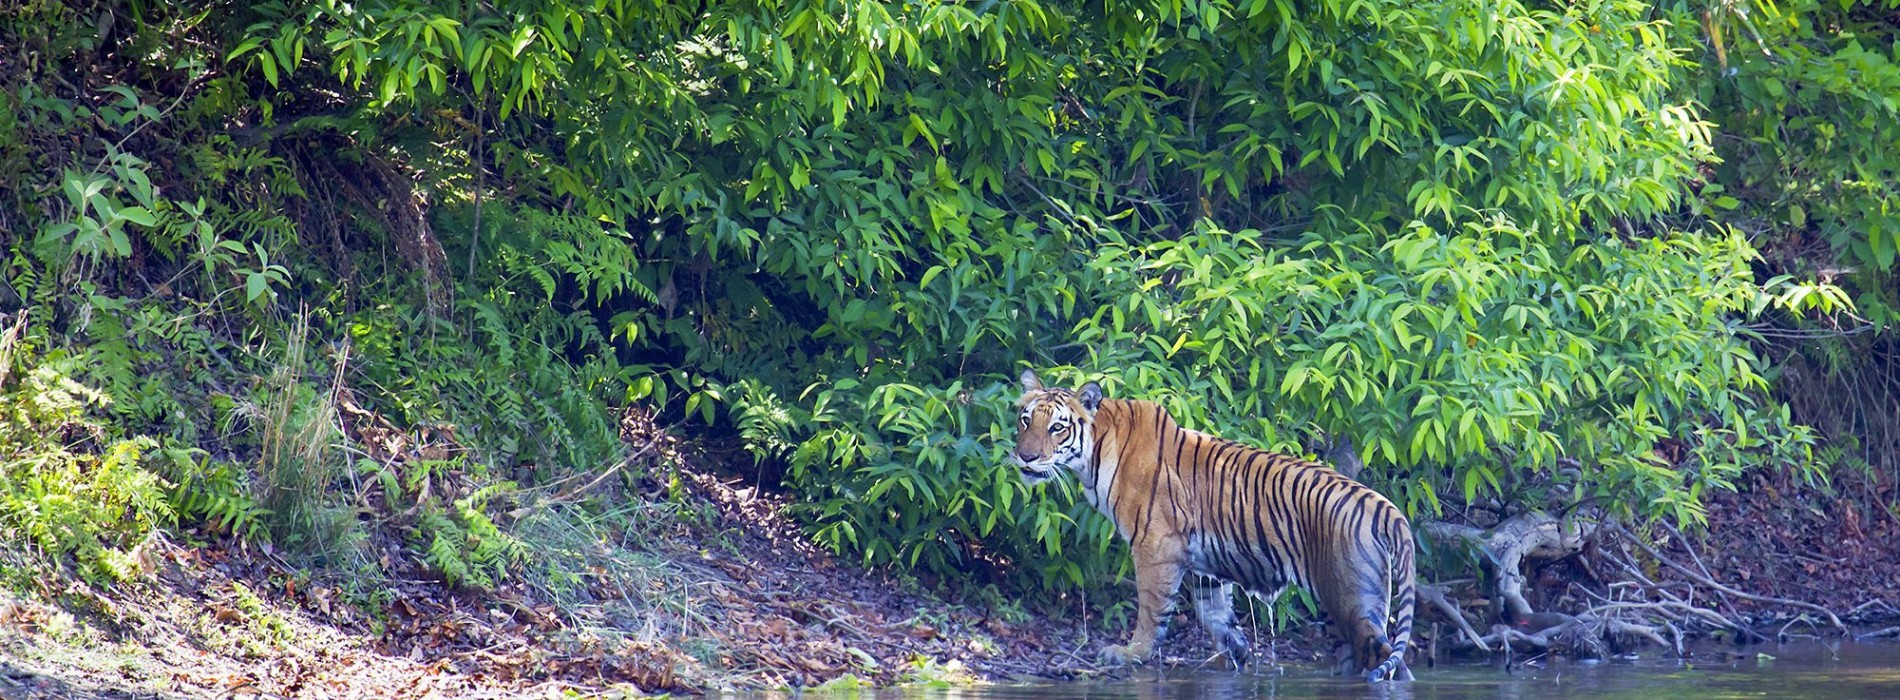 Tiger_in_Chitwan_National_Park.jpg